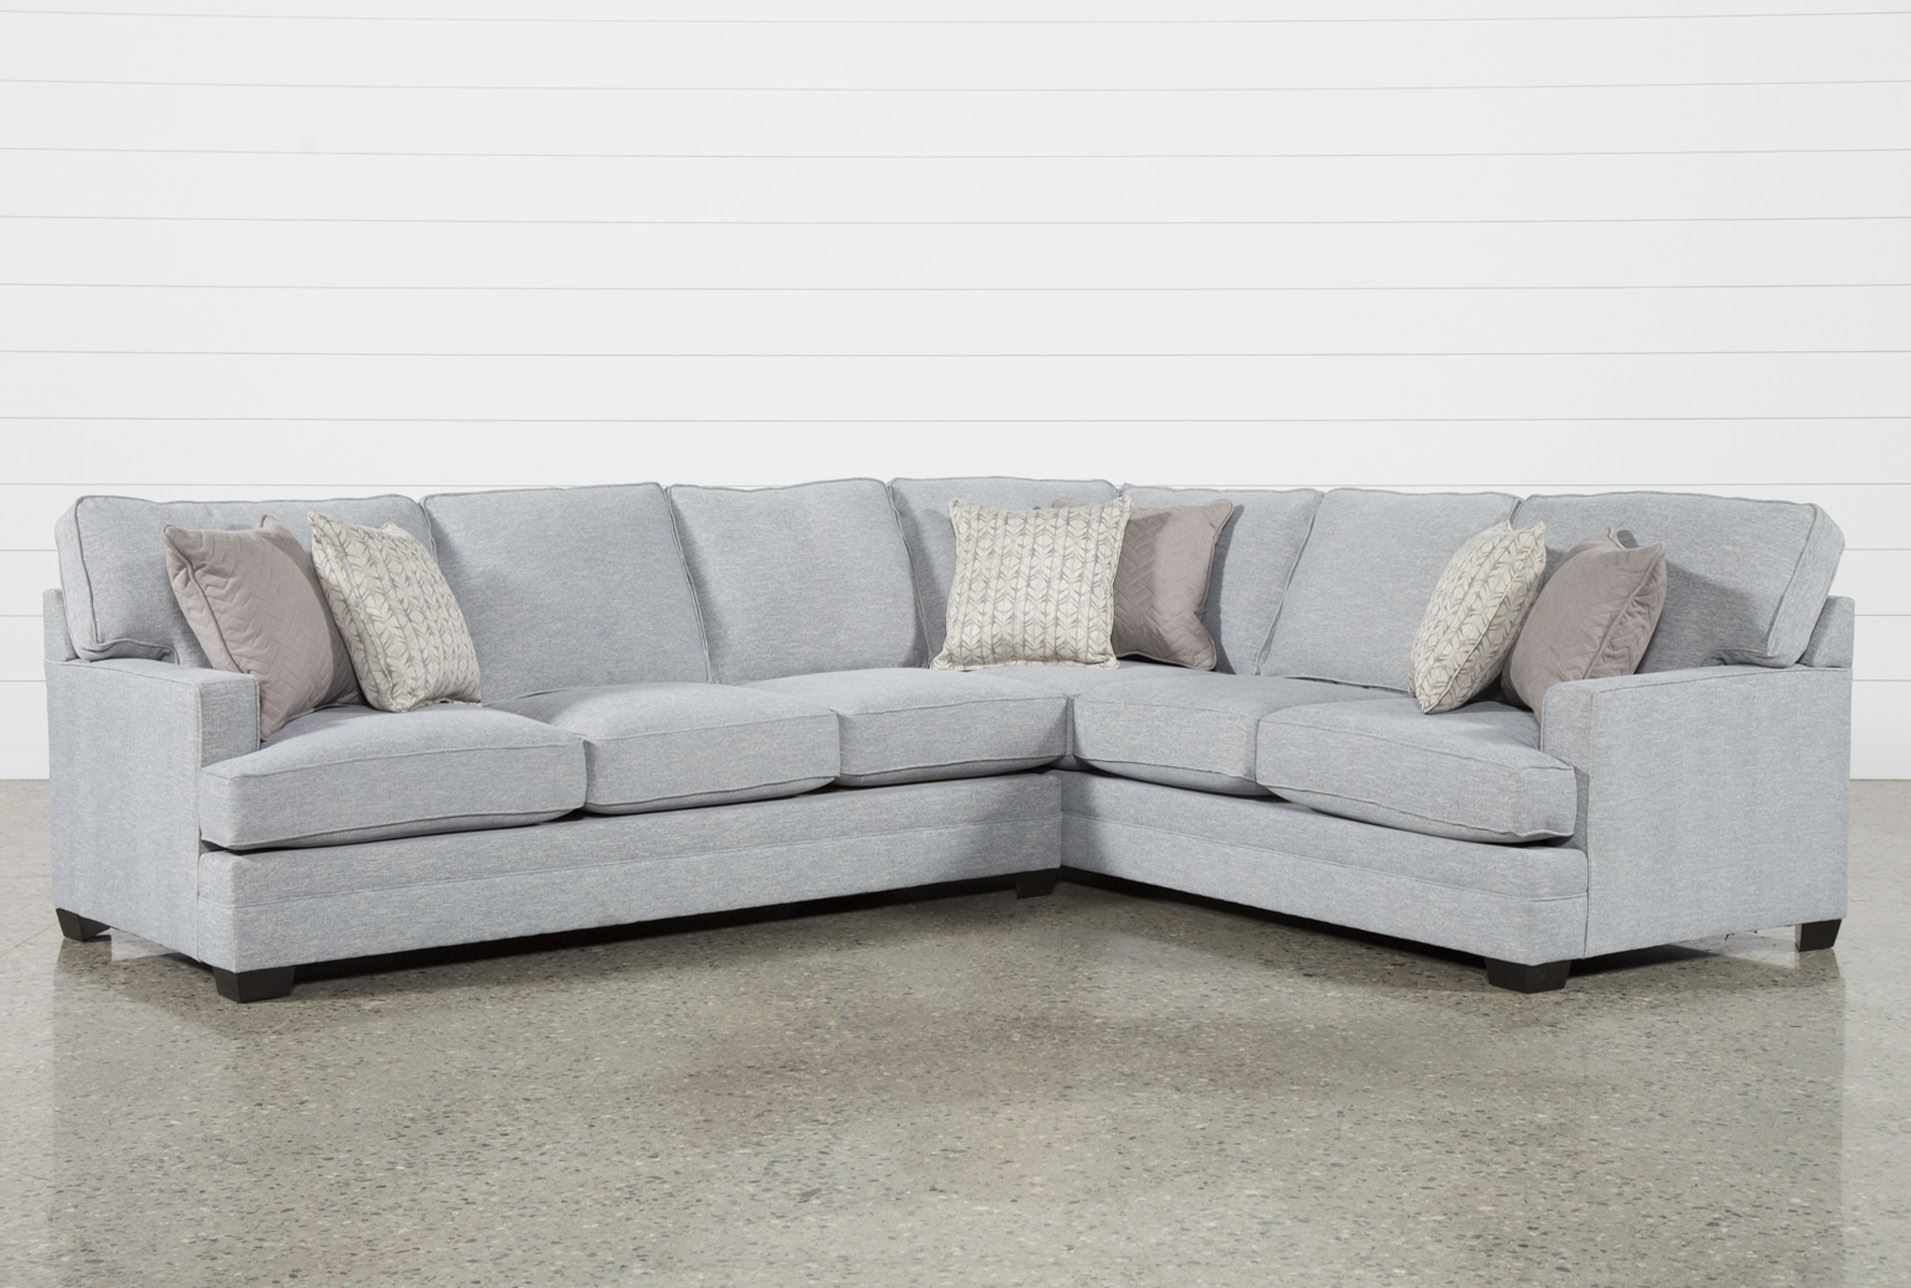 Josephine 2 Piece Sectional W/laf Sofa | Decorating And Interiors With Regard To Kerri 2 Piece Sectionals With Laf Chaise (View 15 of 25)